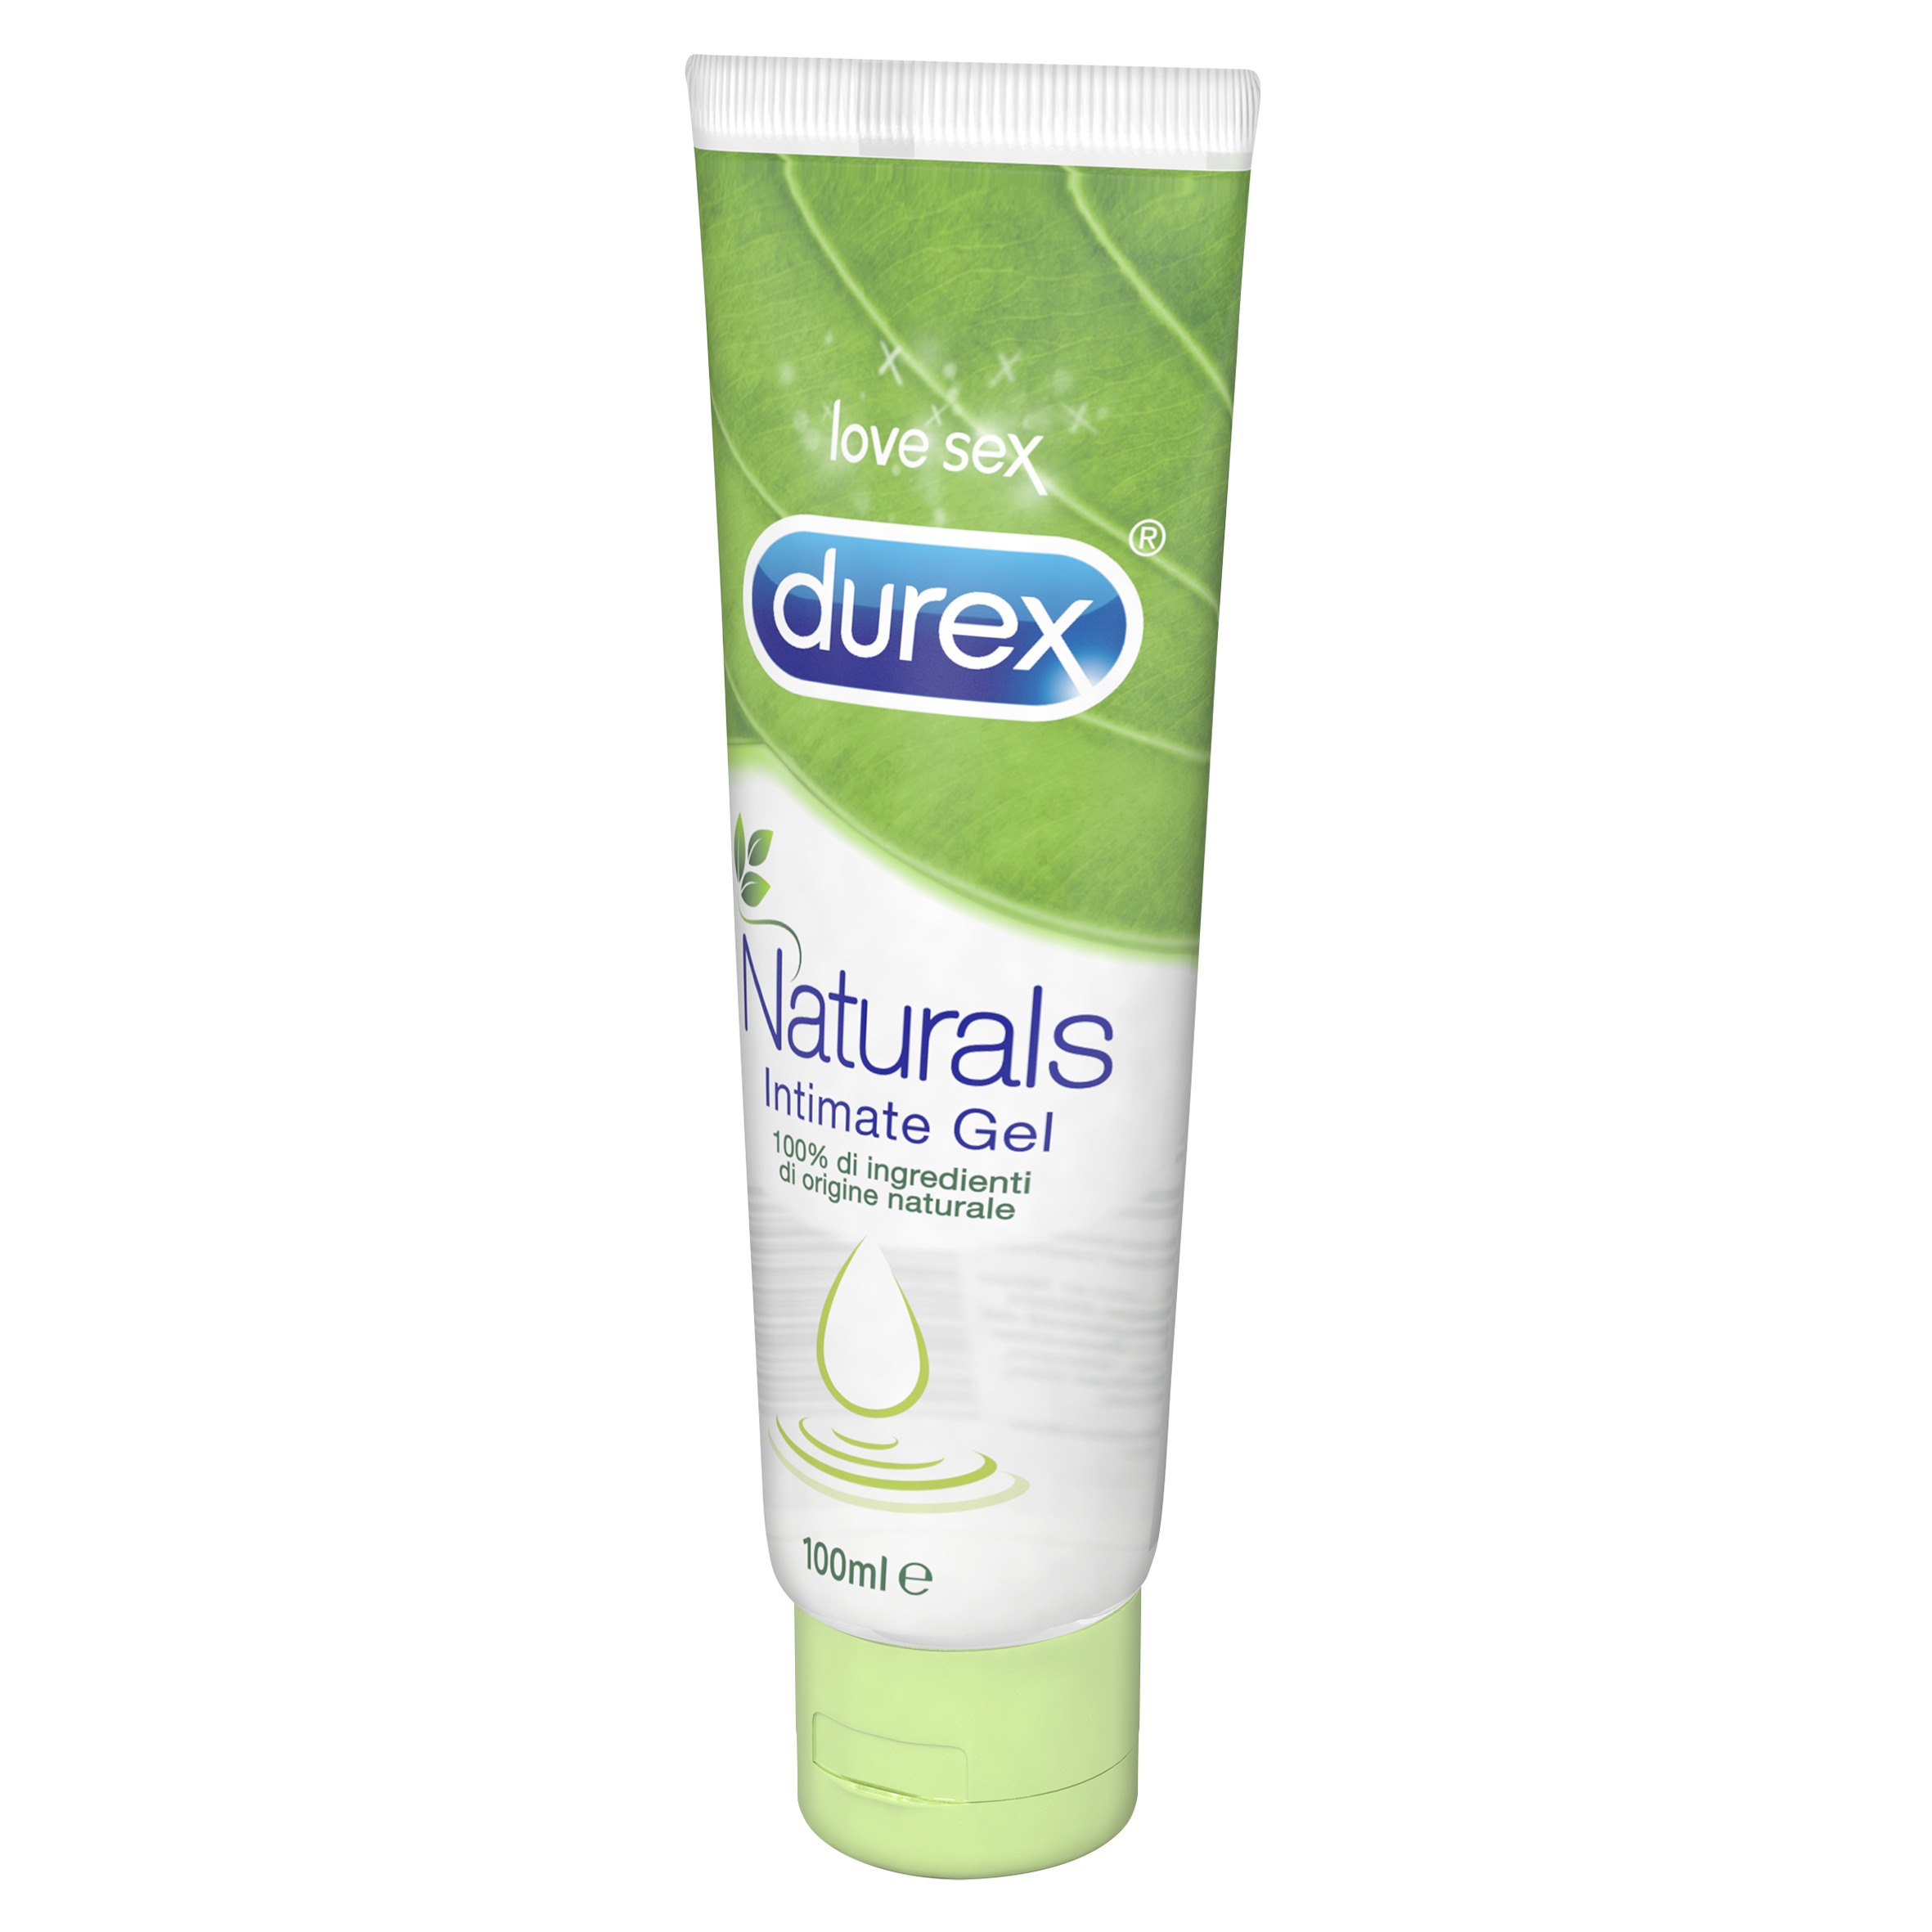 Durex Natural Intimate Gel